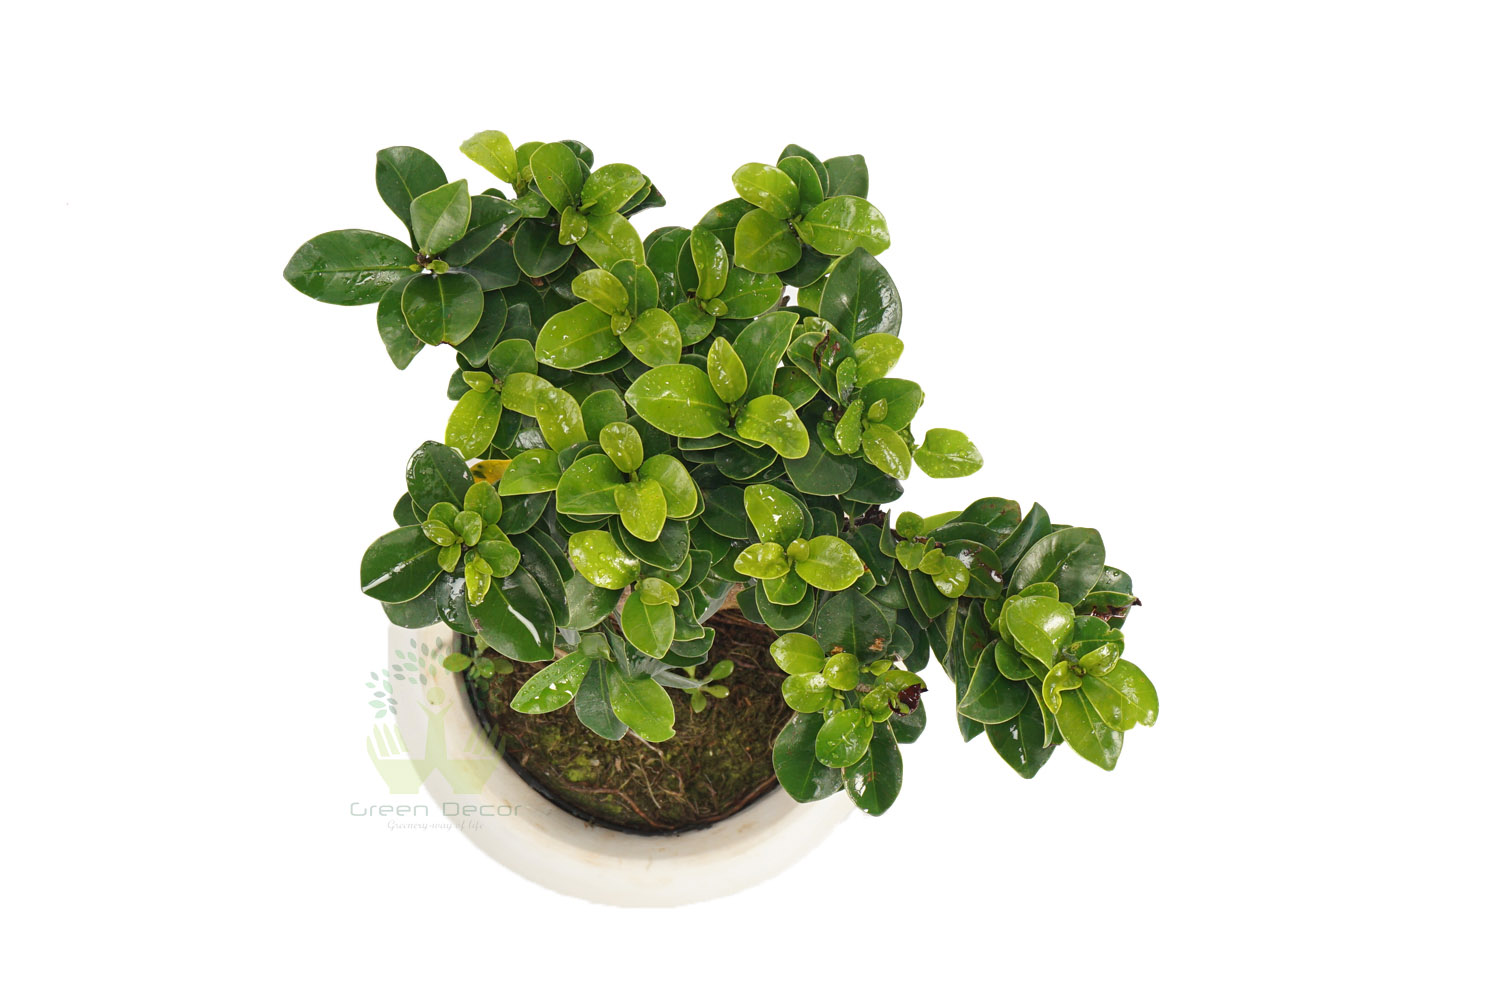 Buy Ficus Plants , White Pots and seeds in Delhi NCR by the best online nursery shop Greendecor.